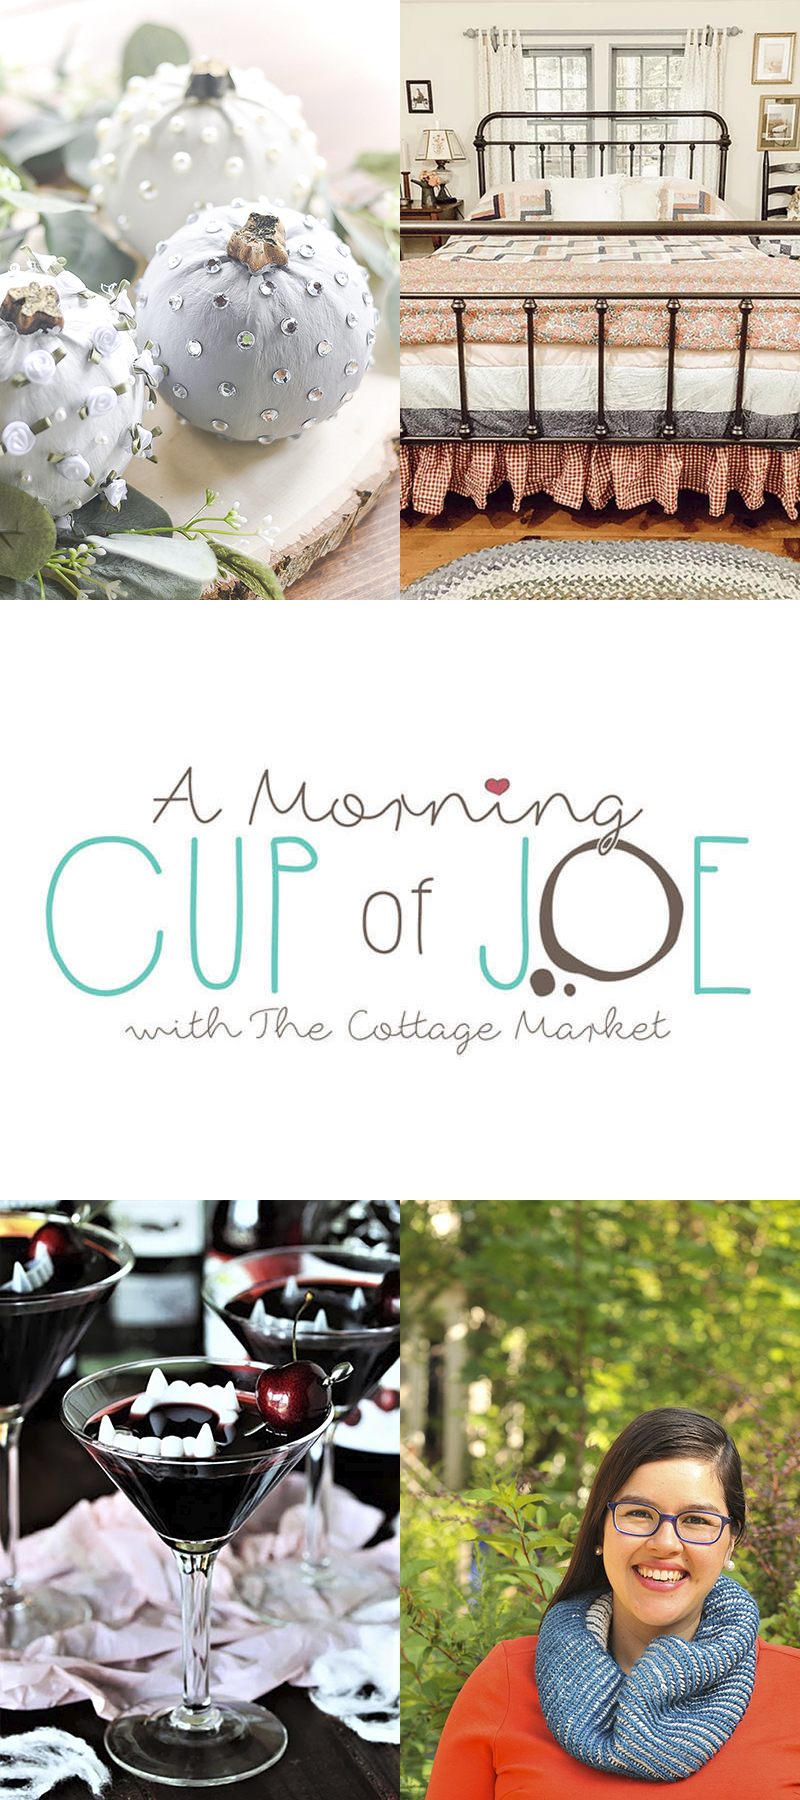 Enjoy A Morning Cup Of Joe Inky Party with DIY Features! Come and enjoy some wonderful features... check out new items on the party then share your creations!